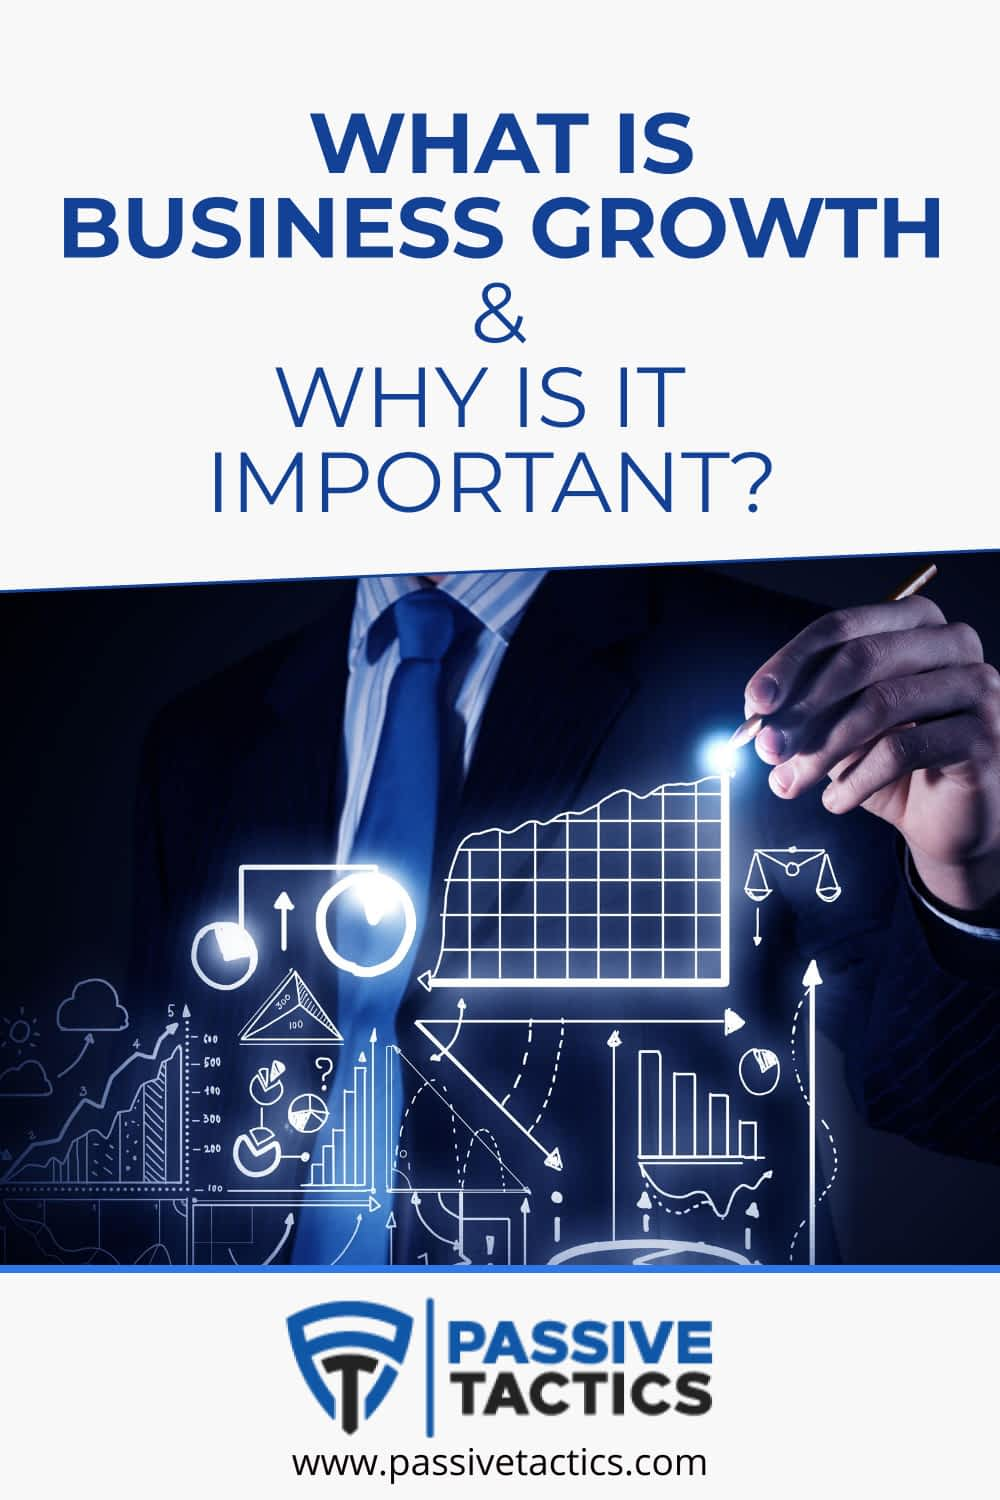 What Is Business Growth & Why Is It Important?